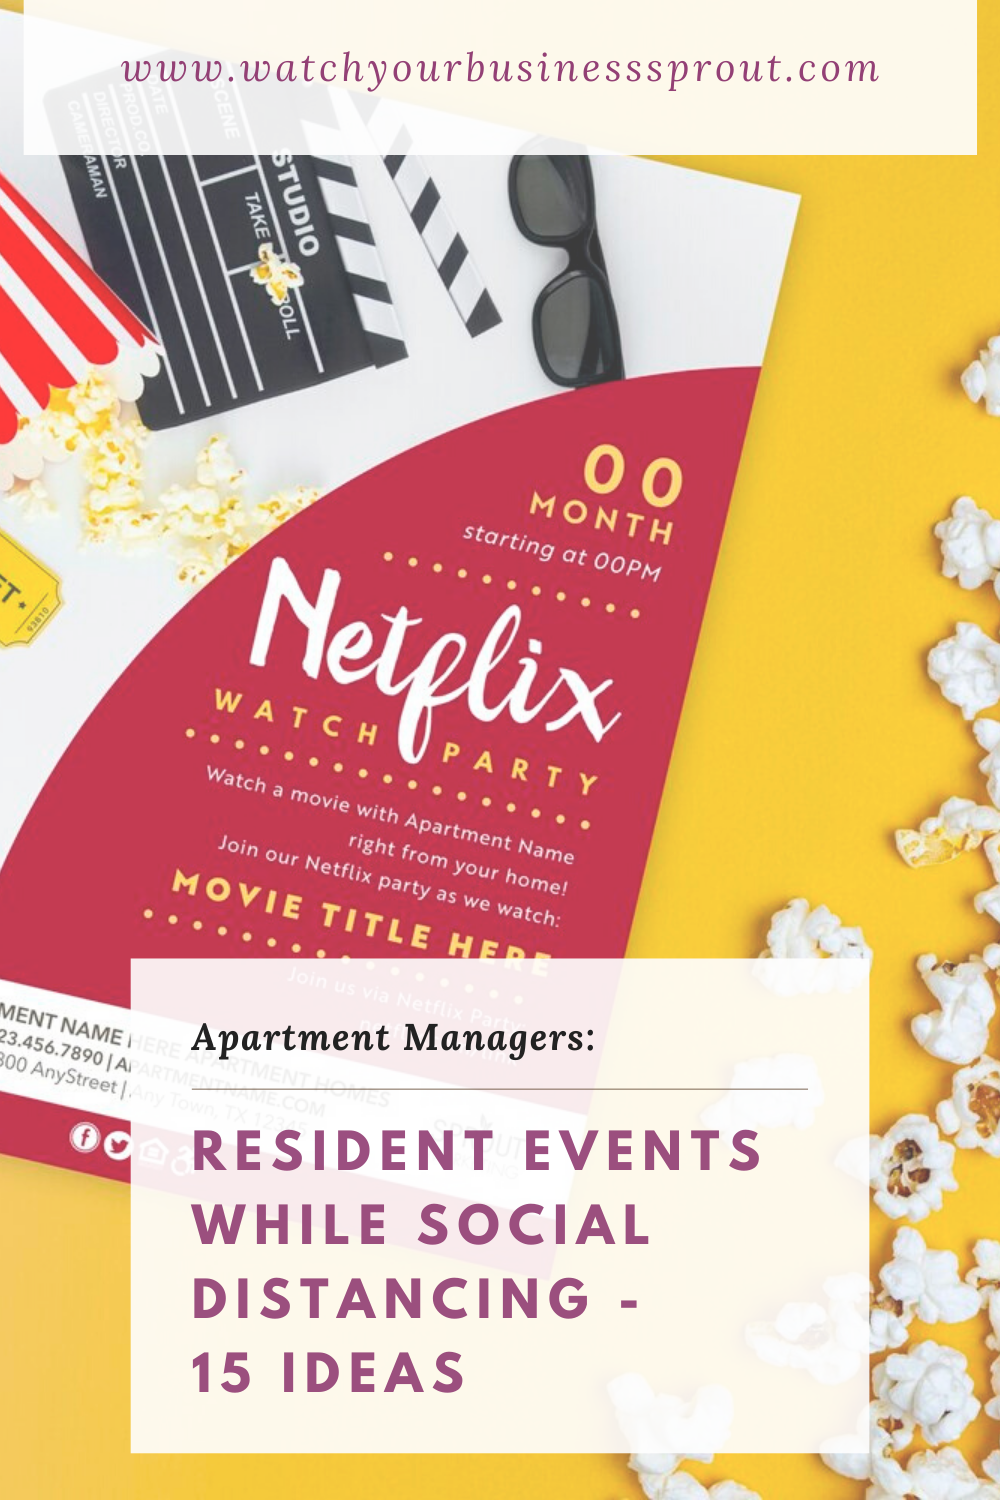 Virtual Resident Event Ideas for 2020 (Social Distancing